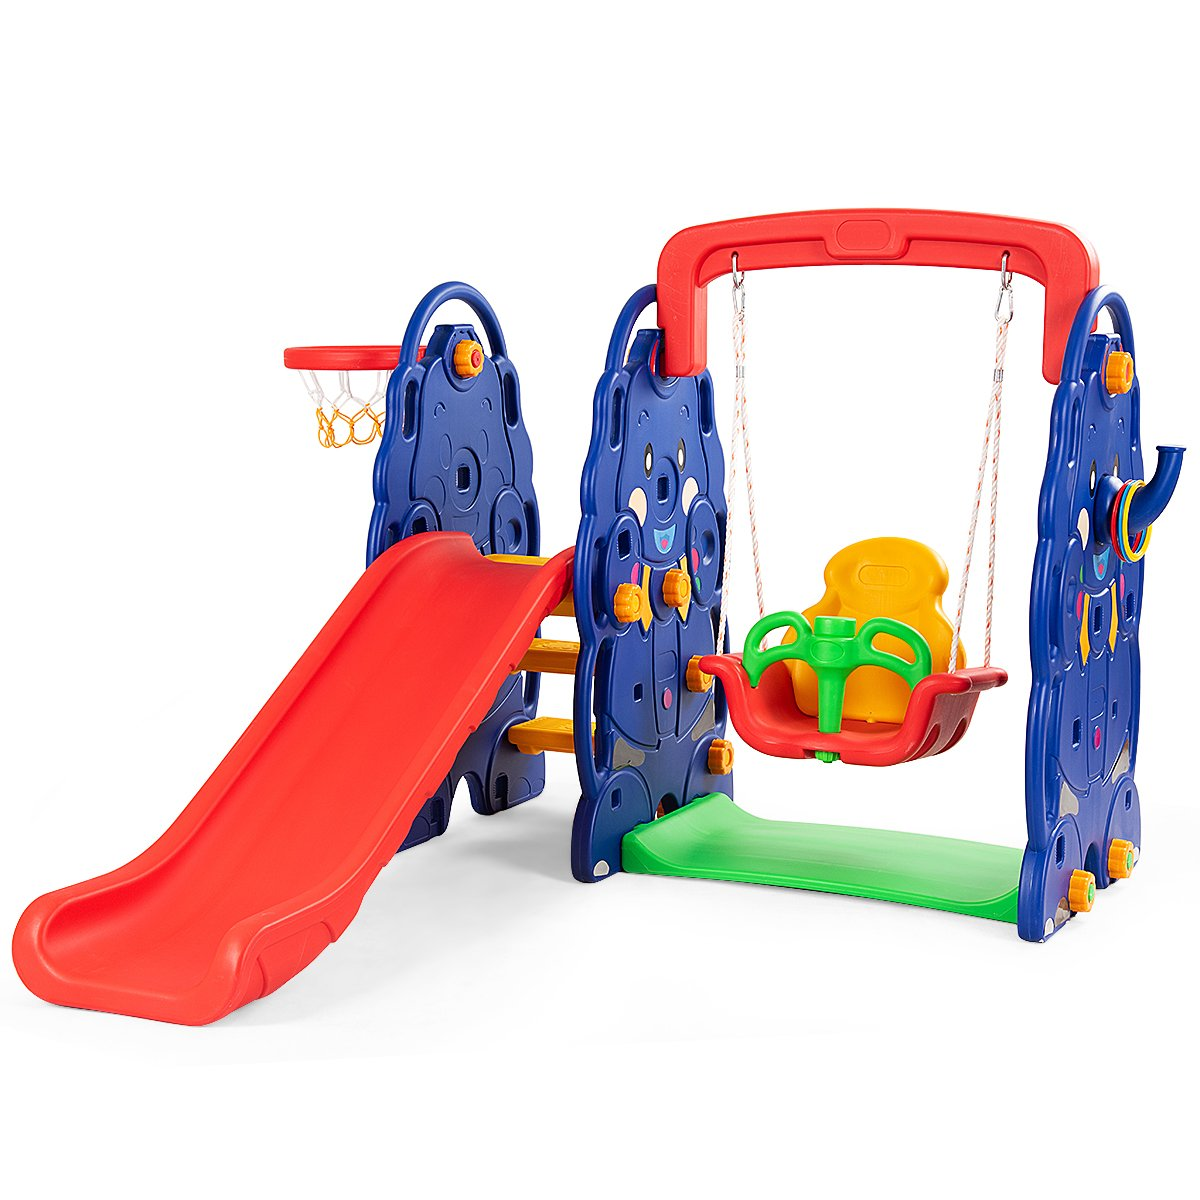 HONEY JOY Toddler Climber and Swing Set, 4-in-1 Indoors & Outdoors Playset with Junior Basketball Hoop , Ring Toss Game by HONEY JOY